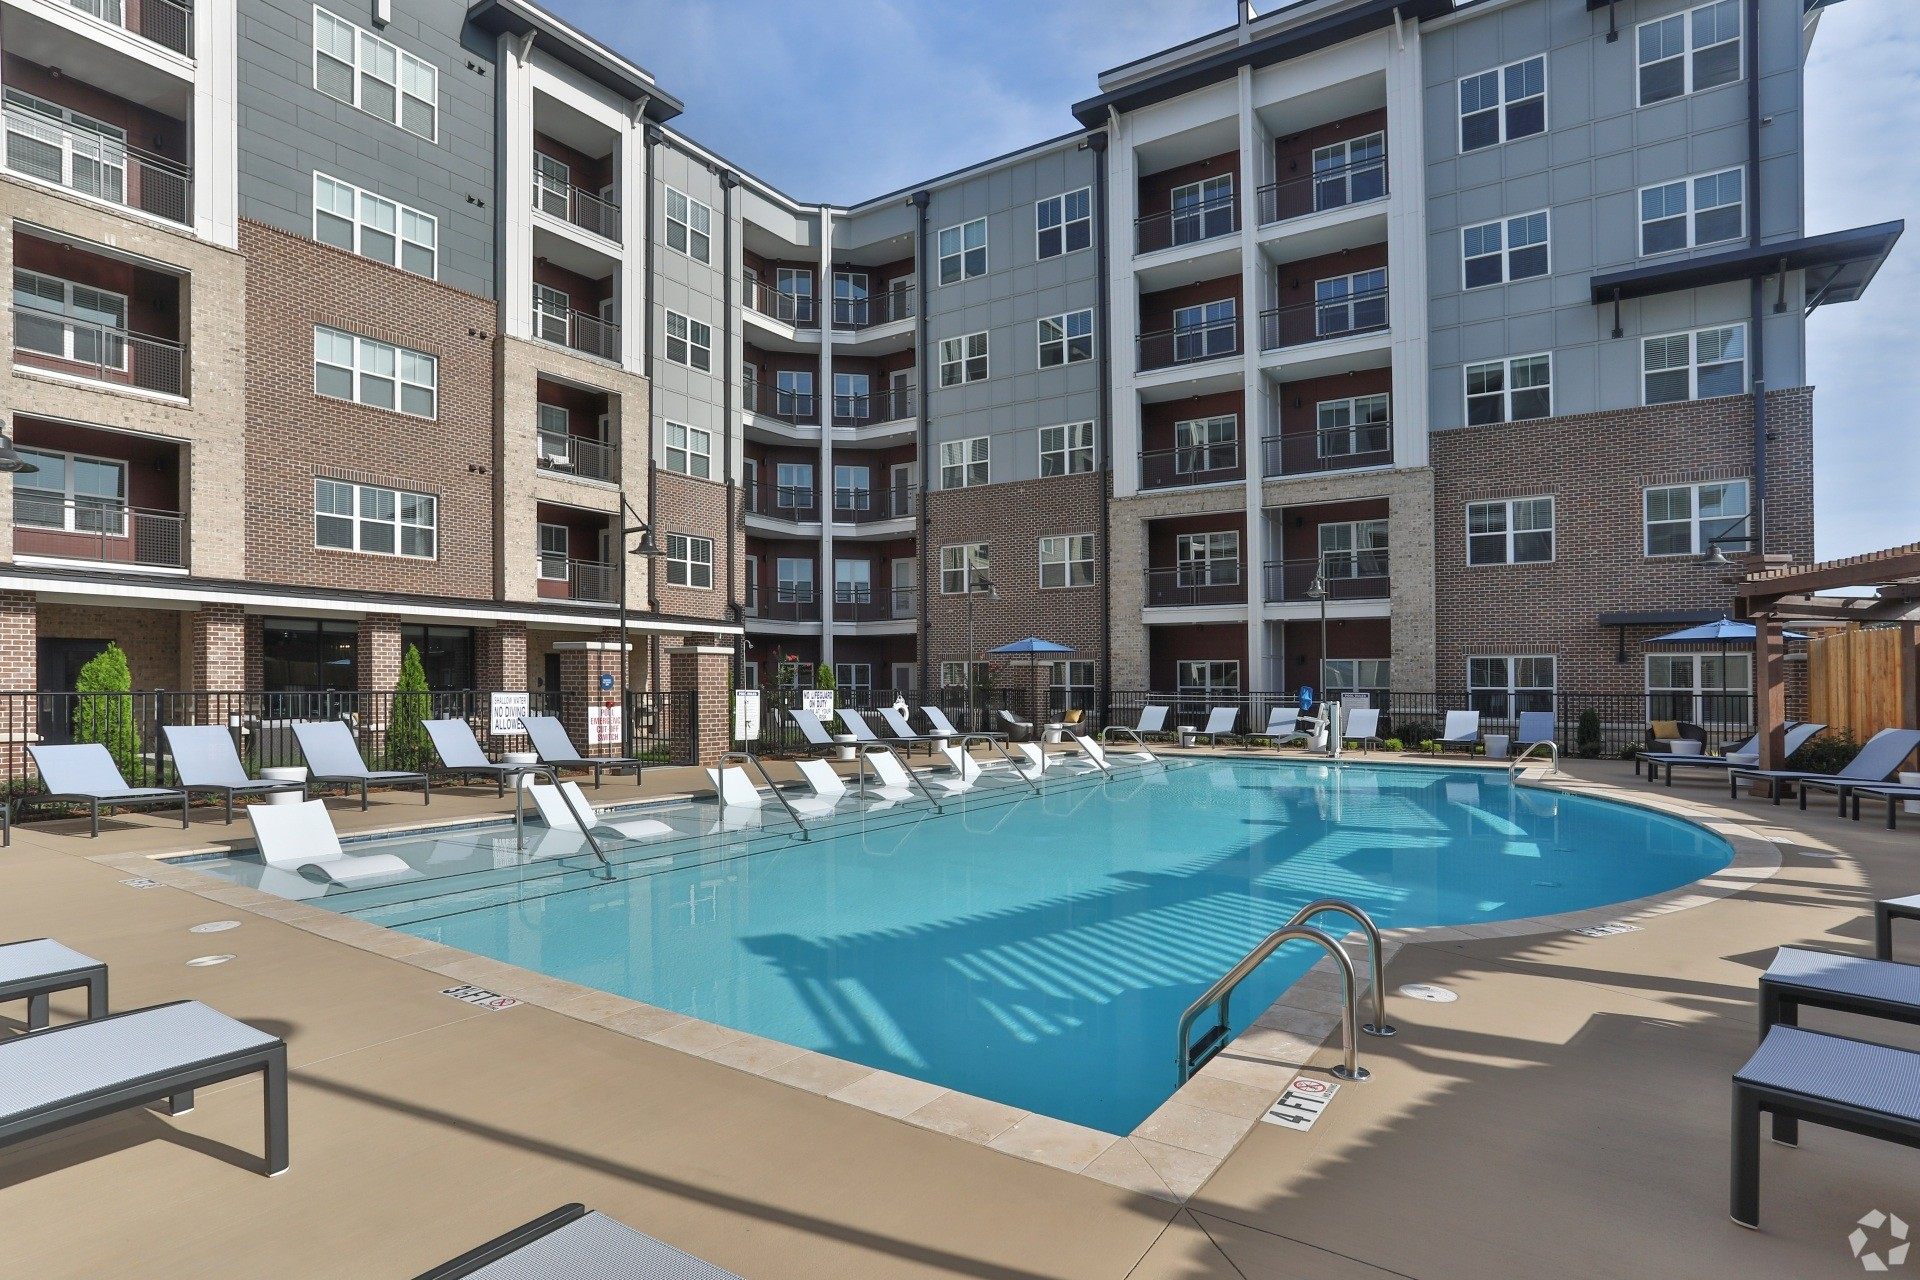 Apartments Near BJU NorthPointe for Bob Jones University Students in Greenville, SC